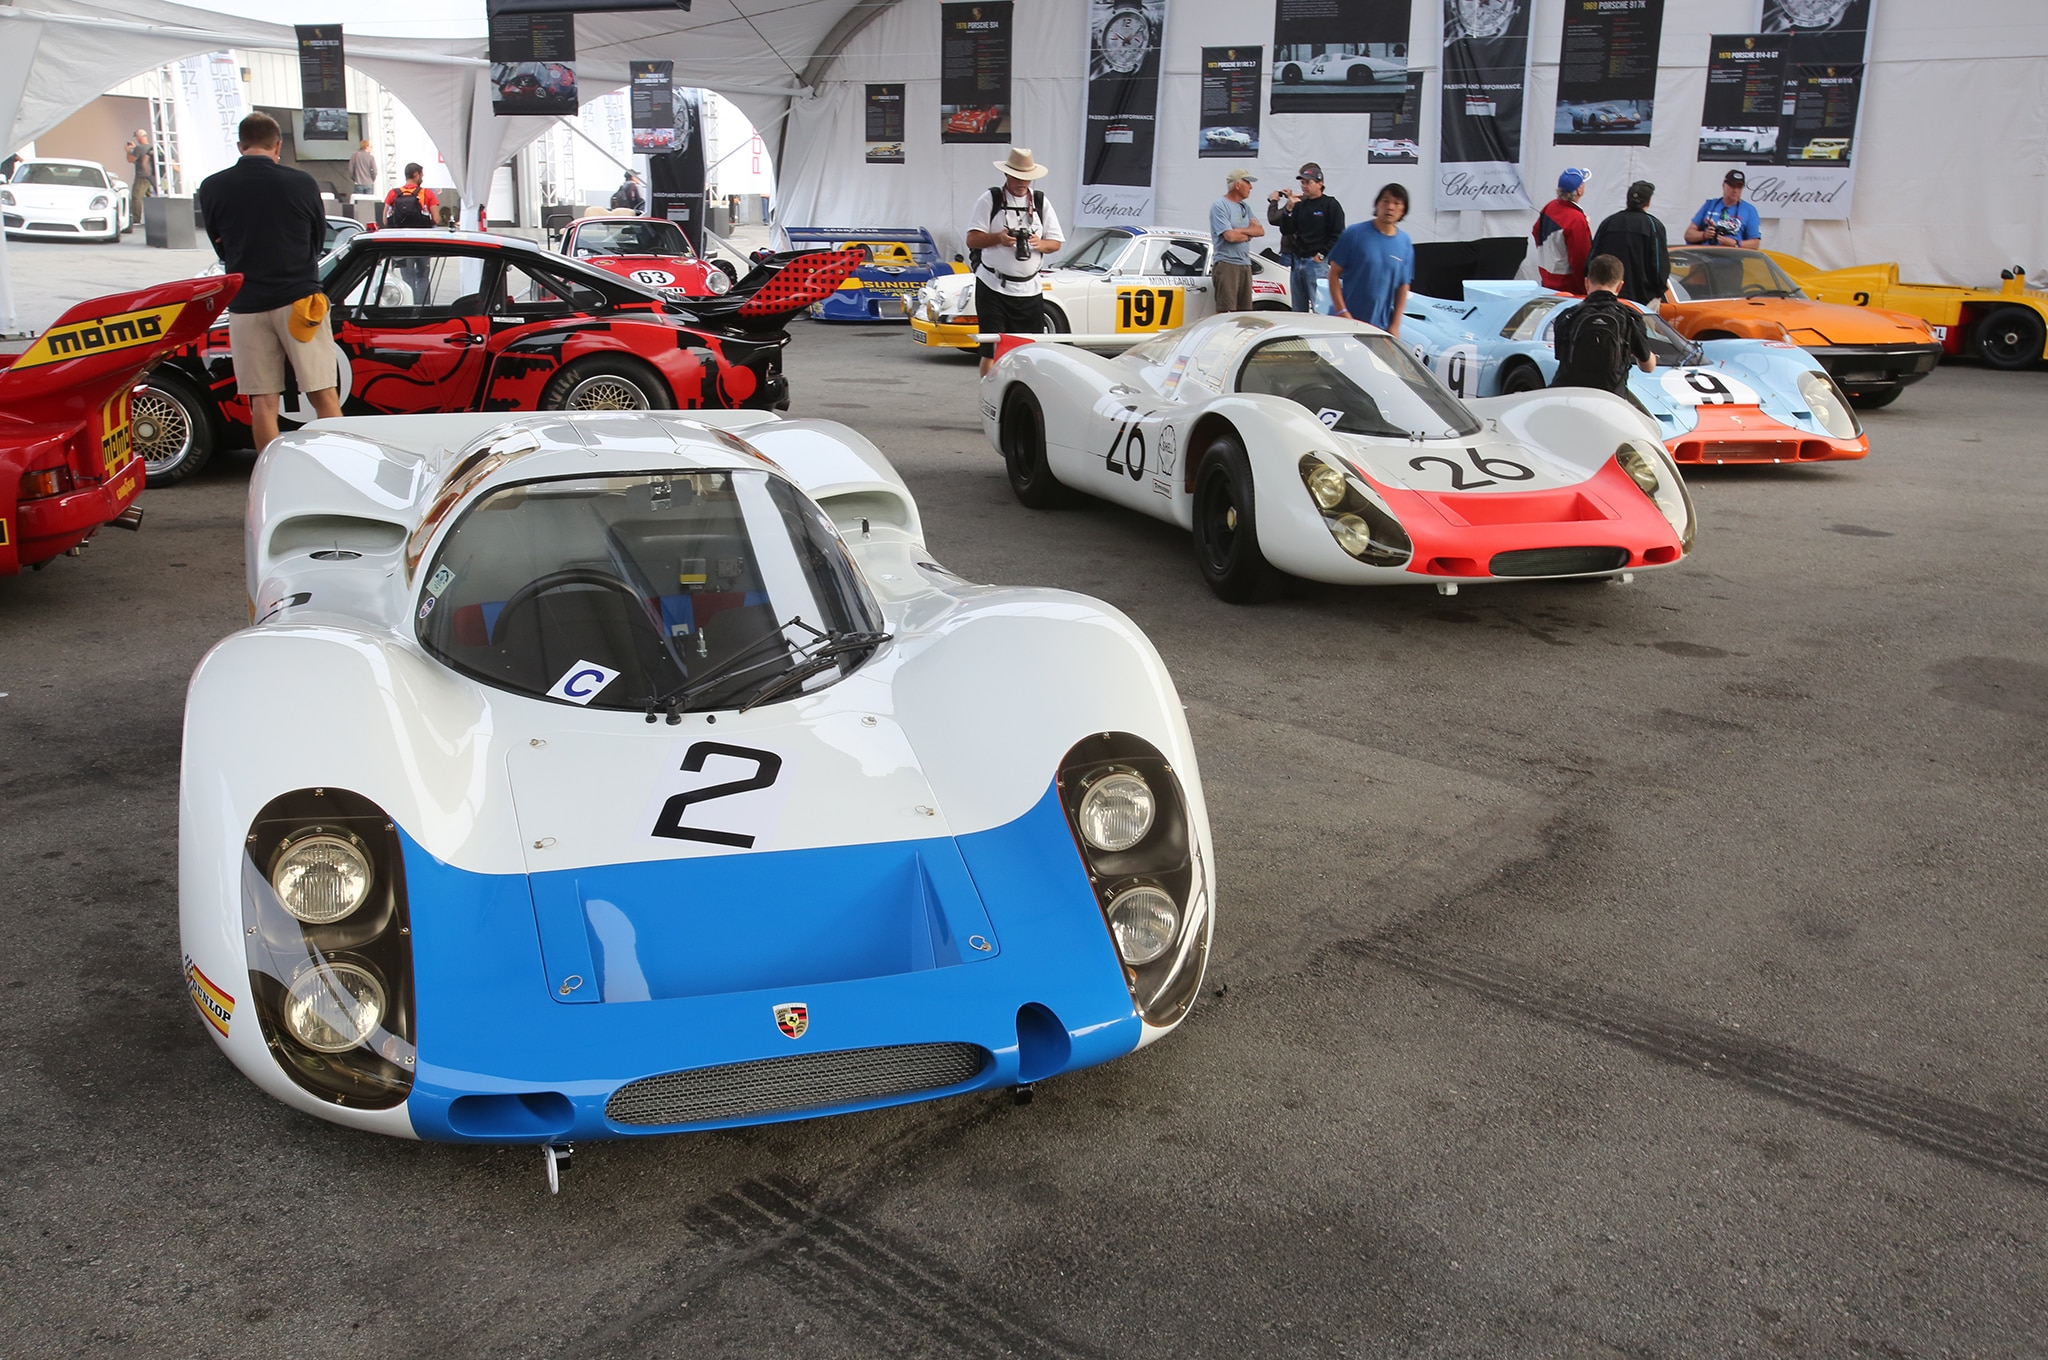 The Coolest Porsche Racing Cars At The Rennsport Reunion